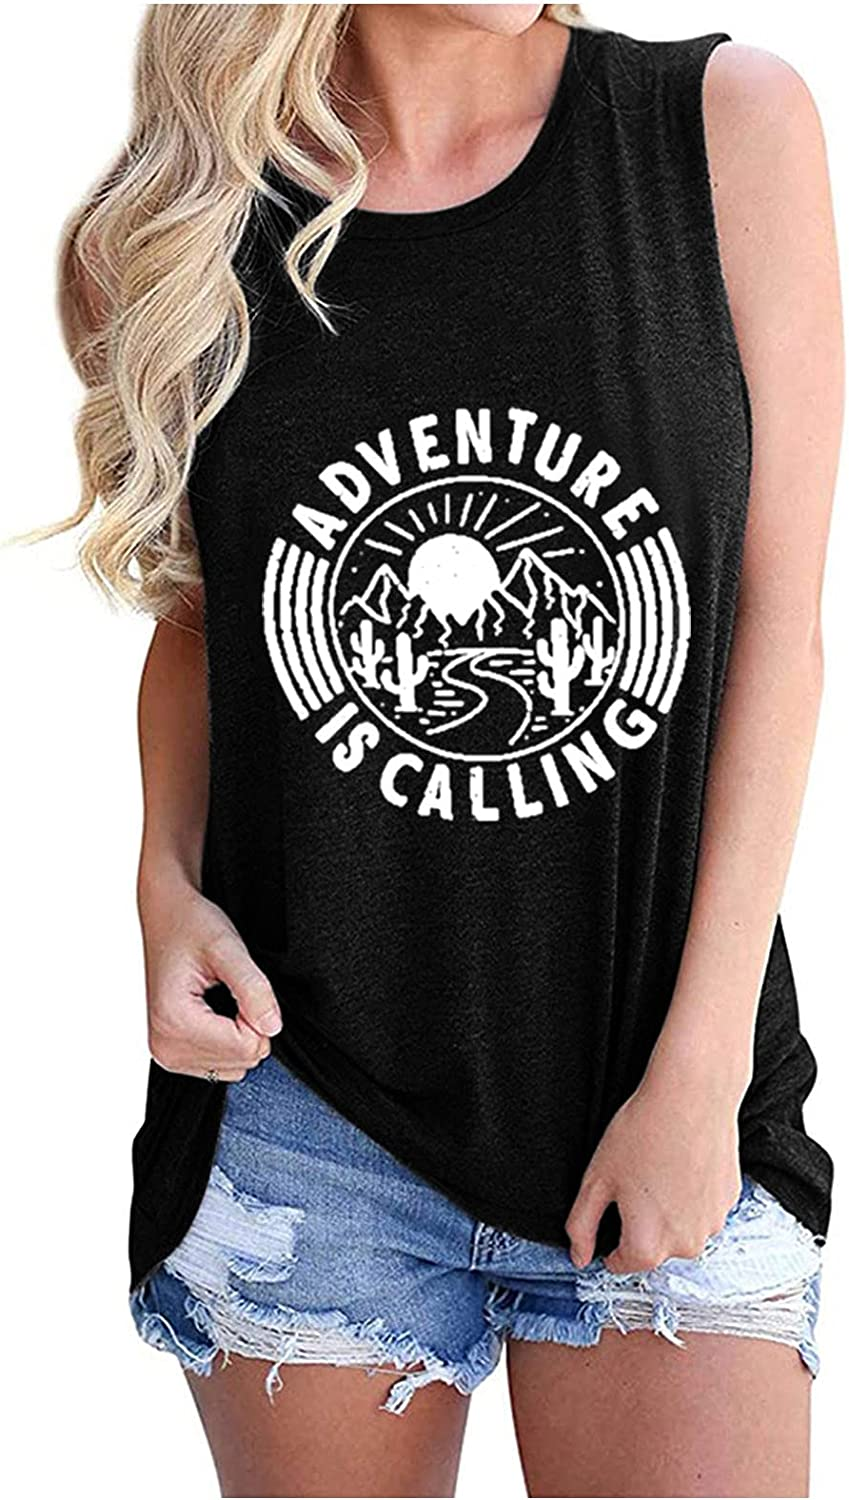 New product type Rockia Adventure is Calling Fixed price for sale Tank Tops Graphic - Womens Tees for